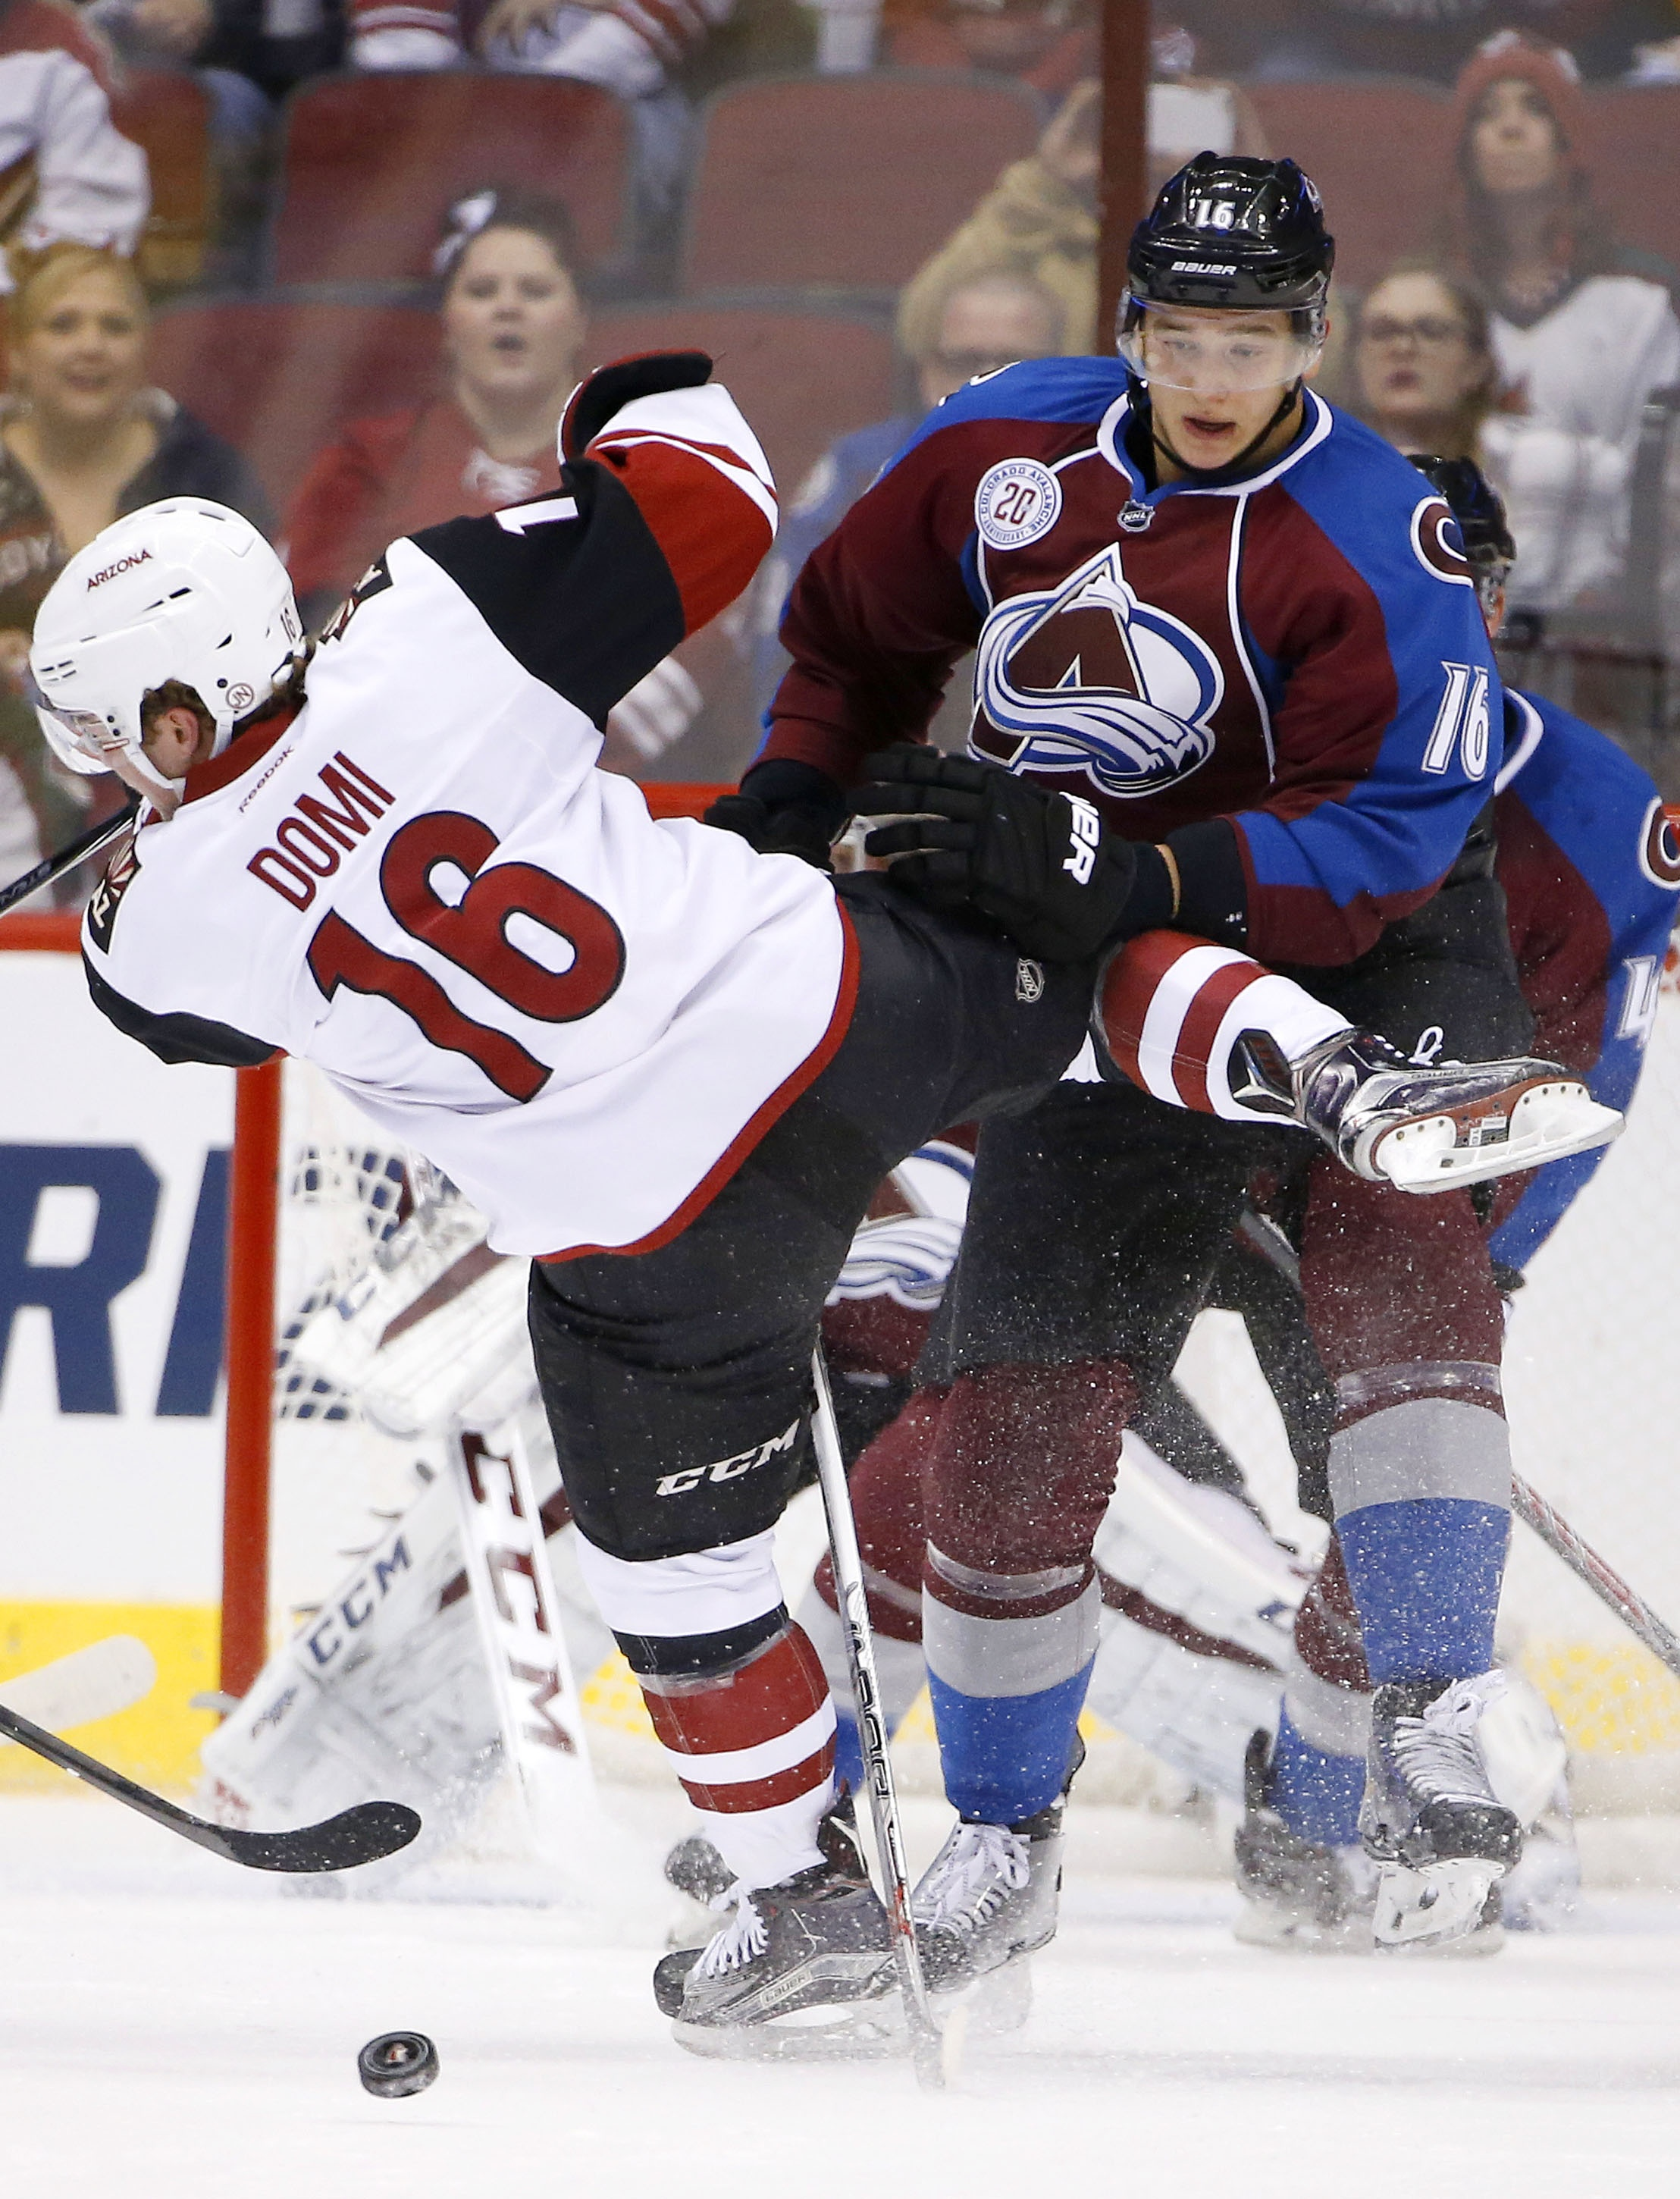 Colorado Avalanche's Nikita Zadorov, right, of Russia, checks Arizona Coyotes' Max Domi, left, off the puck during the first period of an NHL hockey game Thursday, Nov. 5, 2015, in Glendale, Ariz. (AP Photo/Ross D. Franklin)